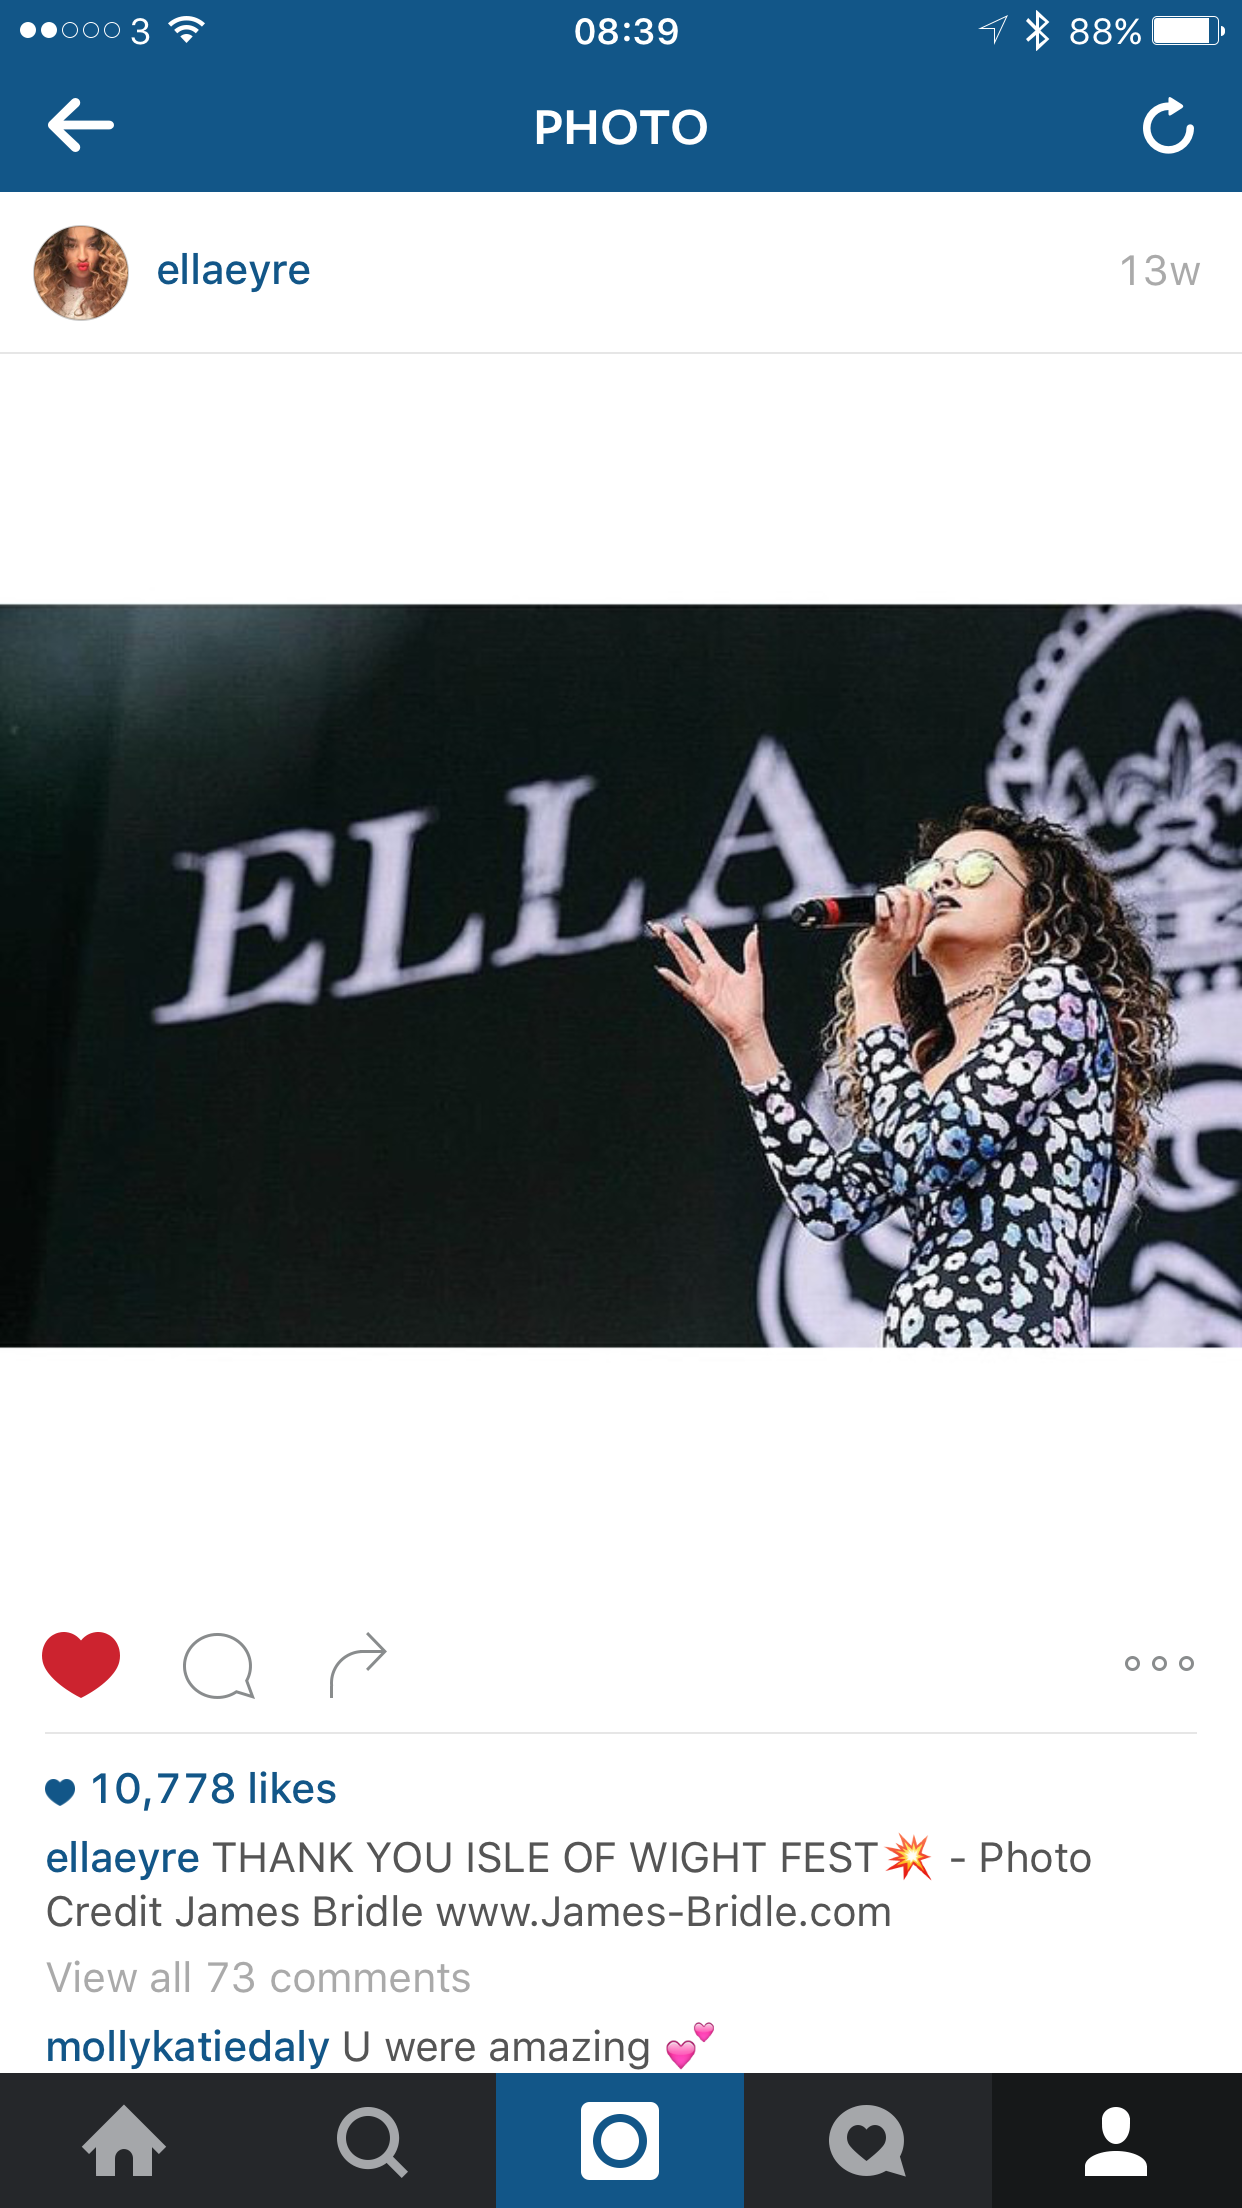 Ella Eyre instagram crediting Isle of wight performance photo